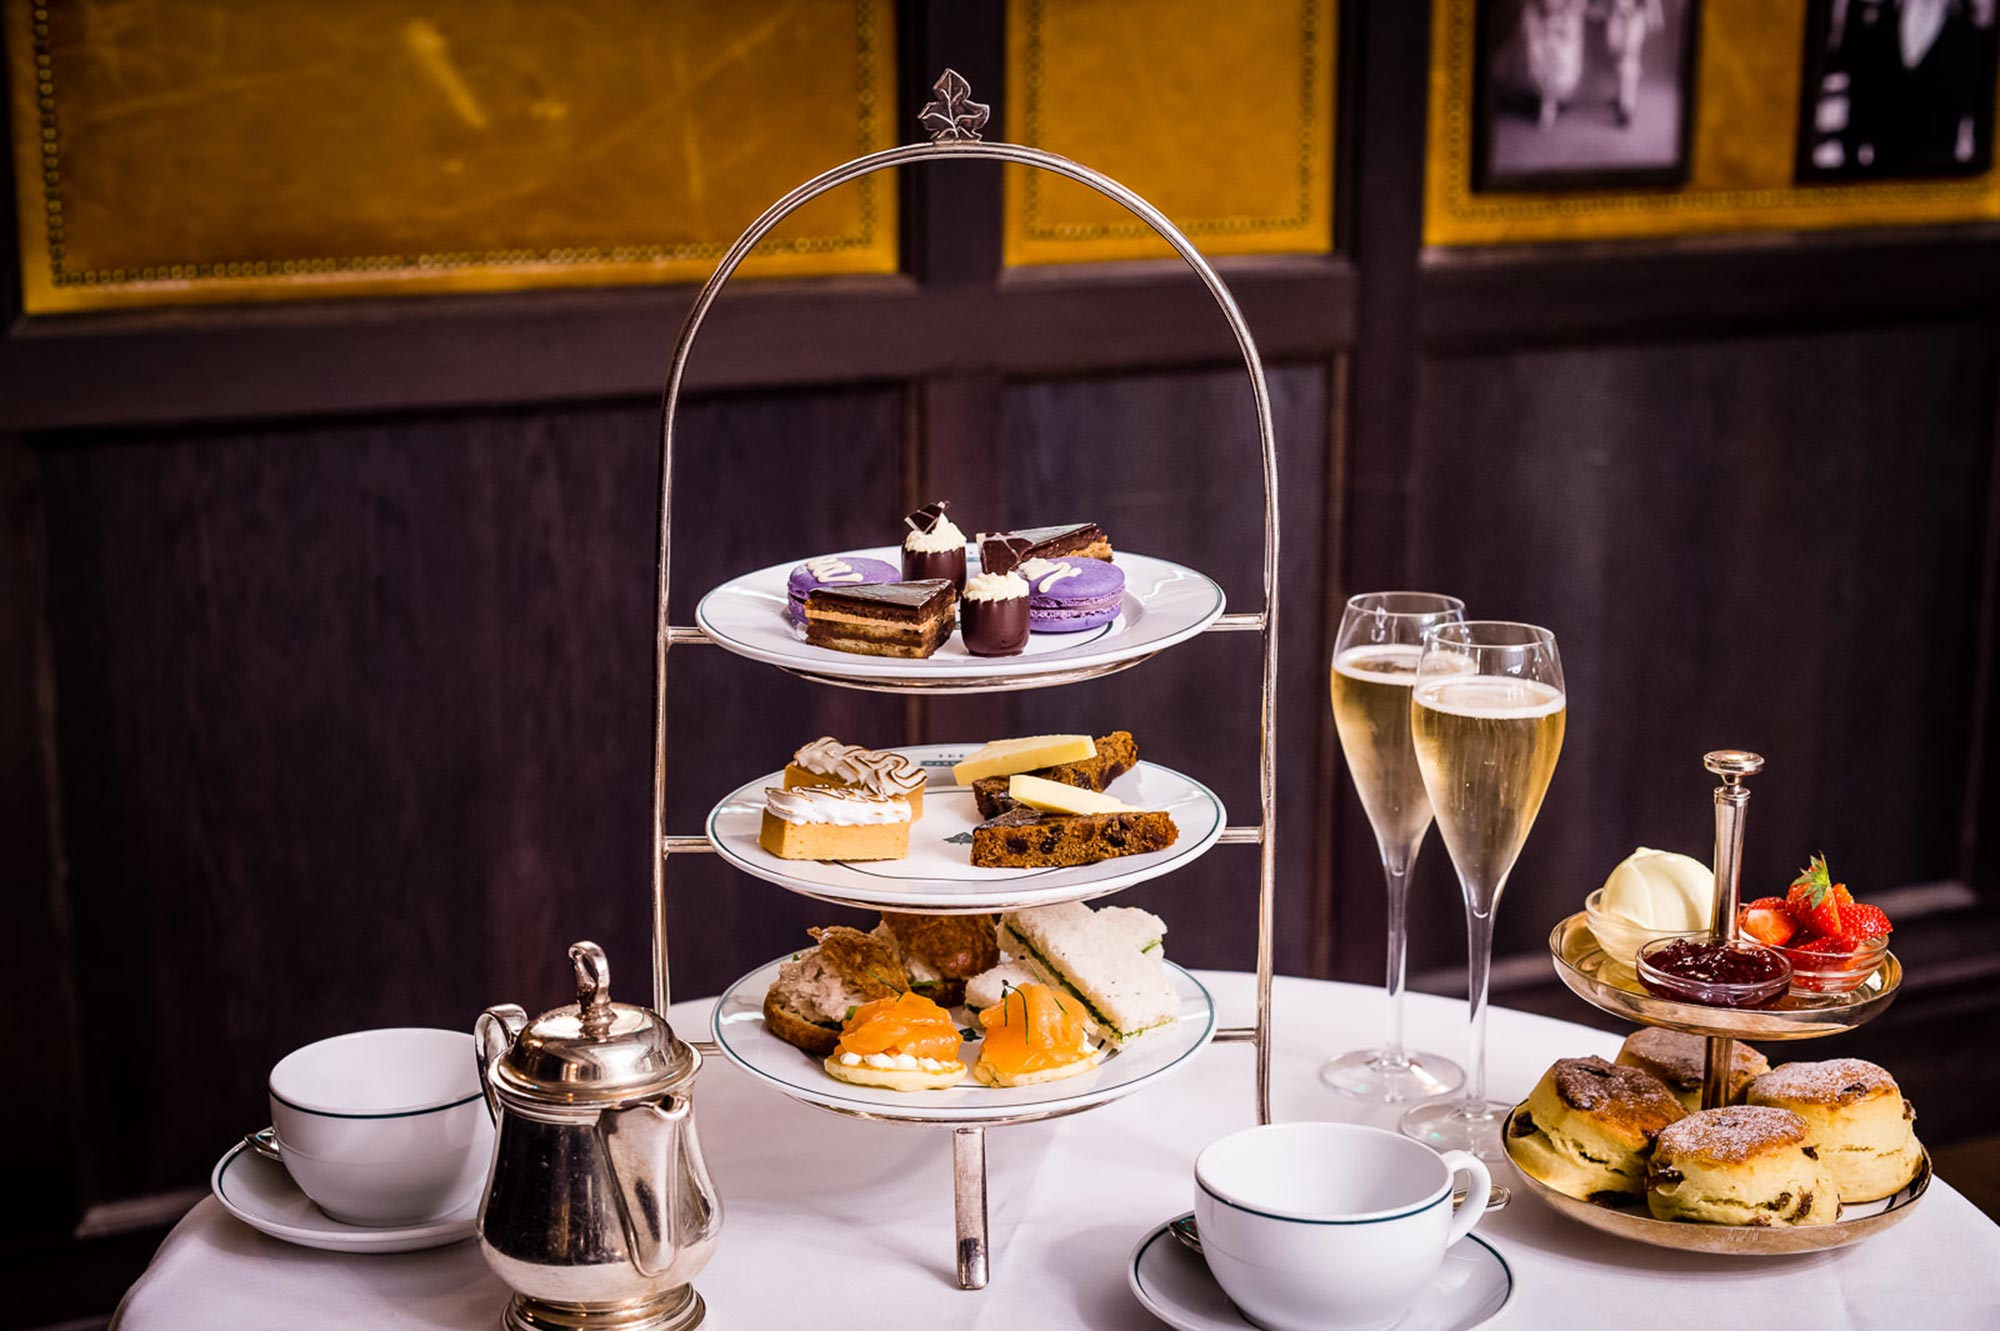 Afternoon tea in Harrogate - The Ivy Harrogate Brasserie - The Ivy Harrogate